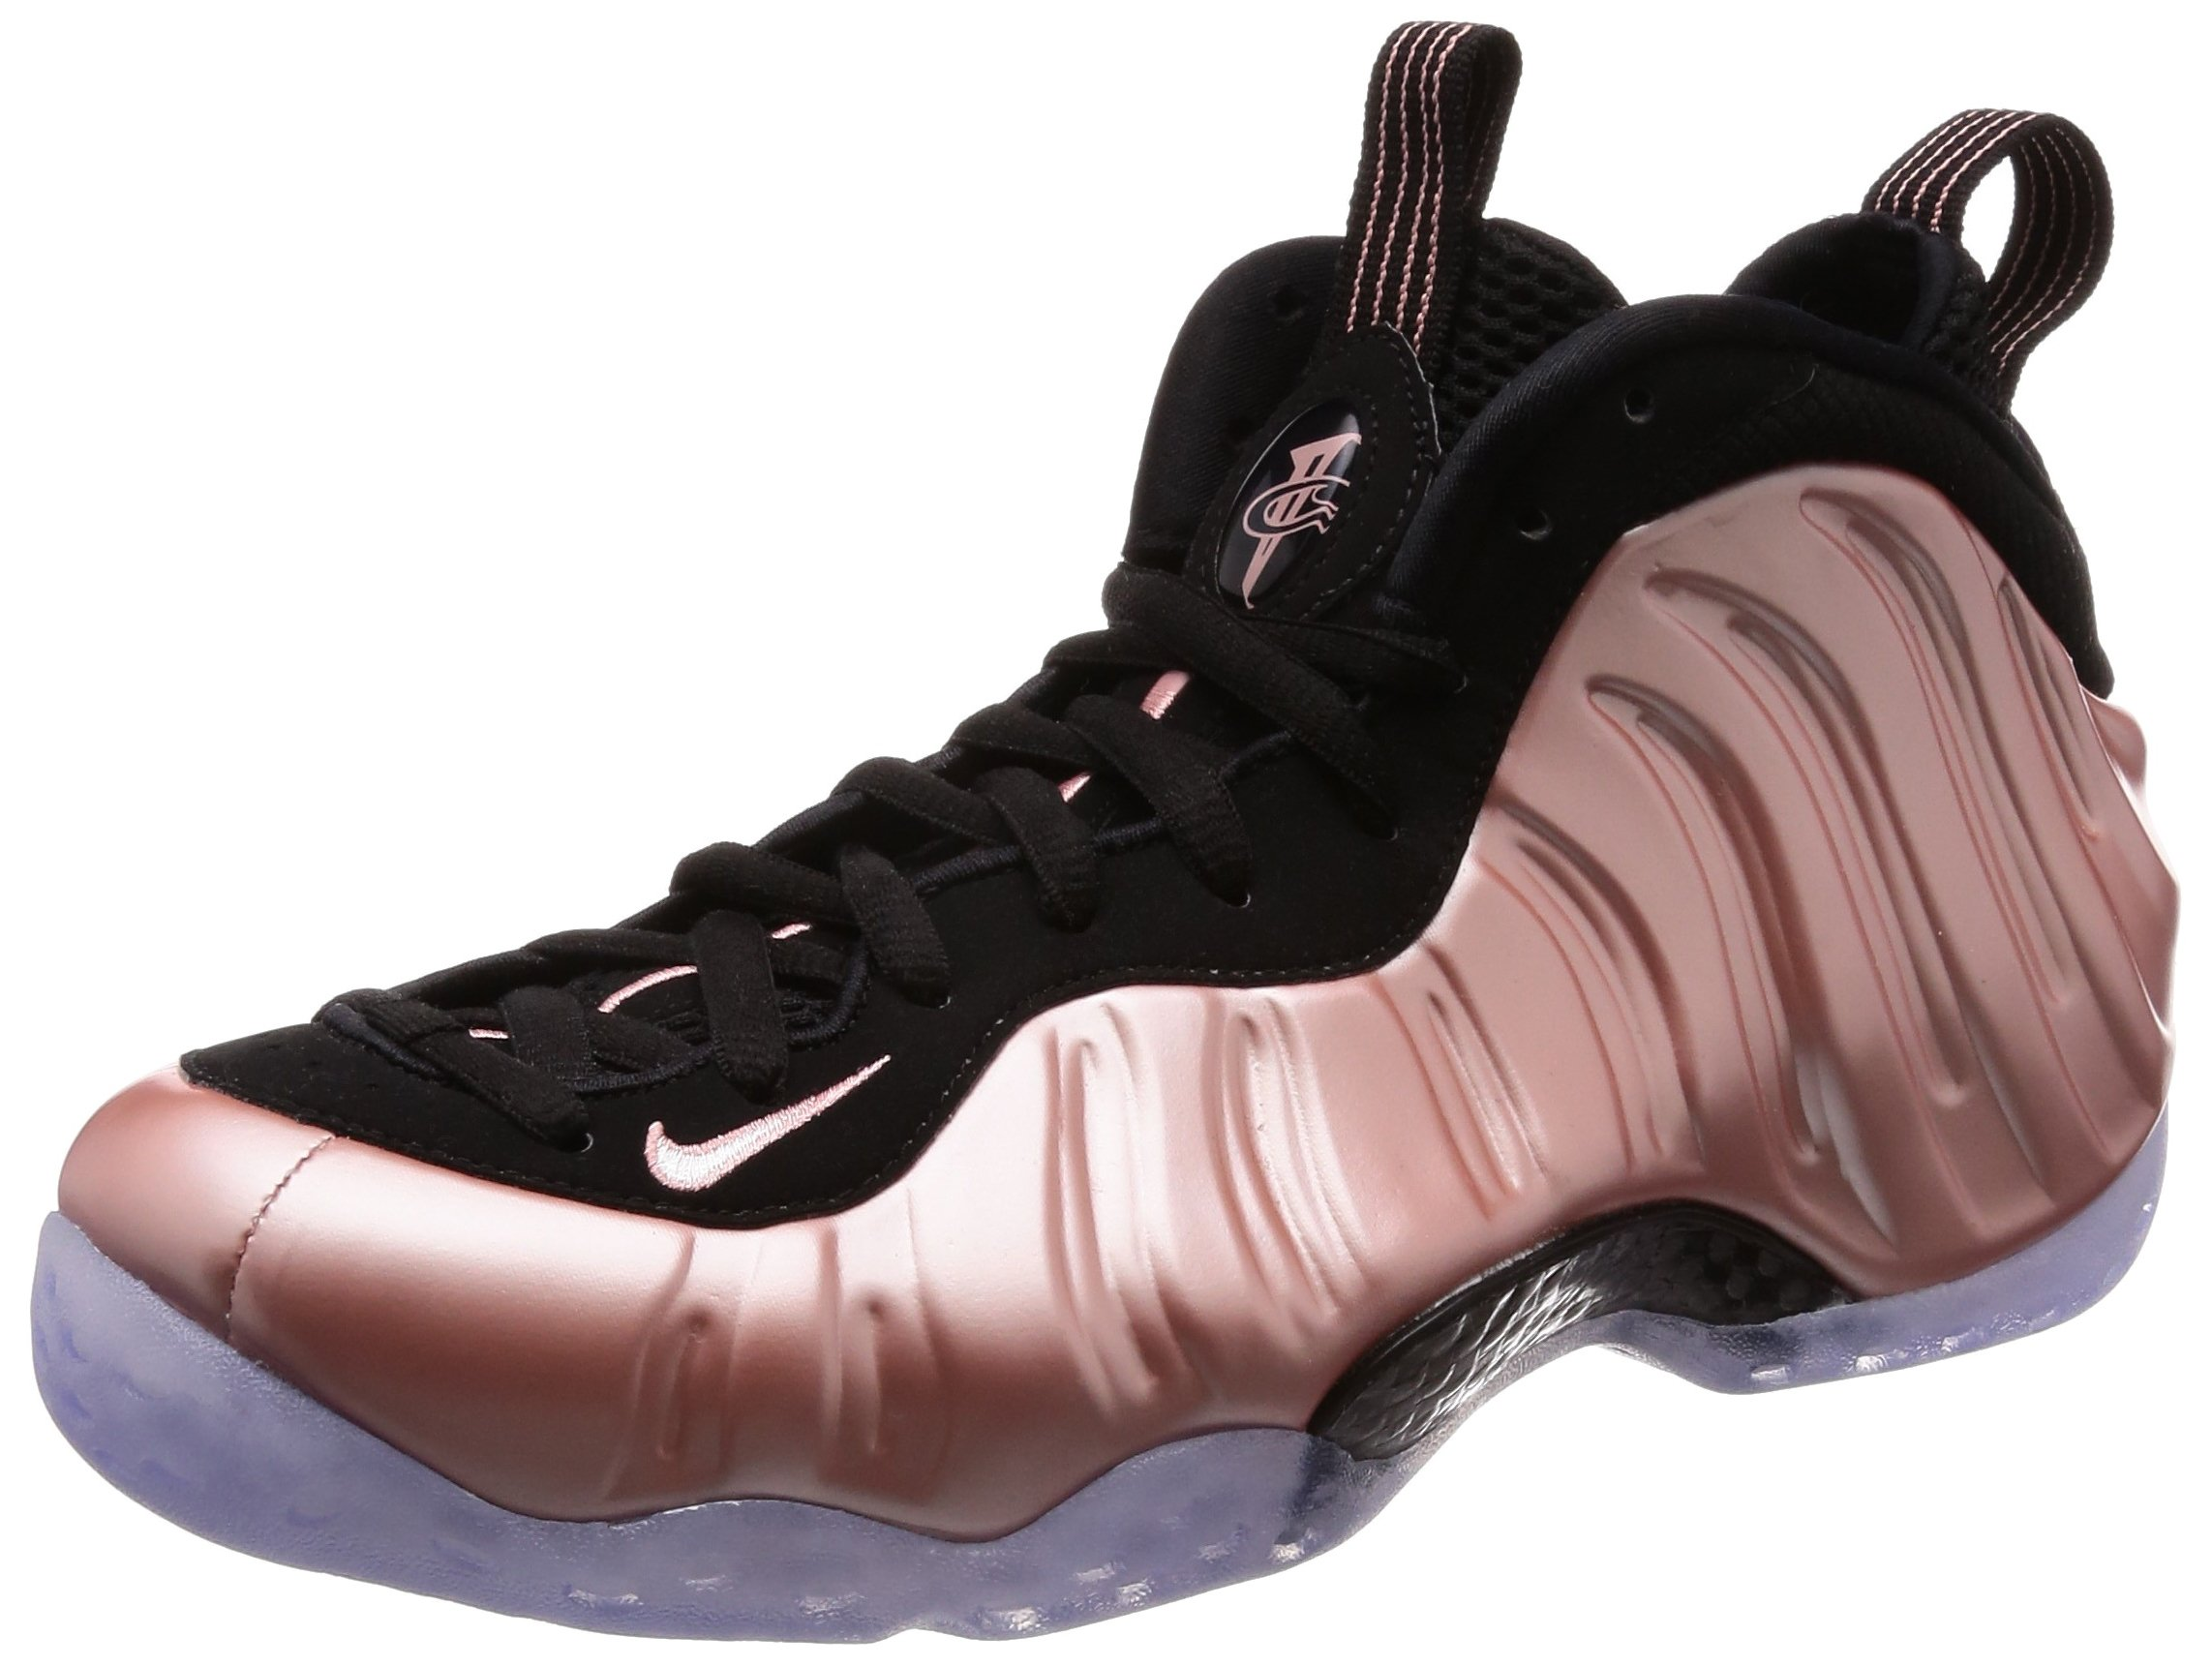 new products cf9ba 2d08a Nike Air Foamposite One Men's Basketball Shoes Rust Pink/White/Black  314996-602 (10 D(M) US)